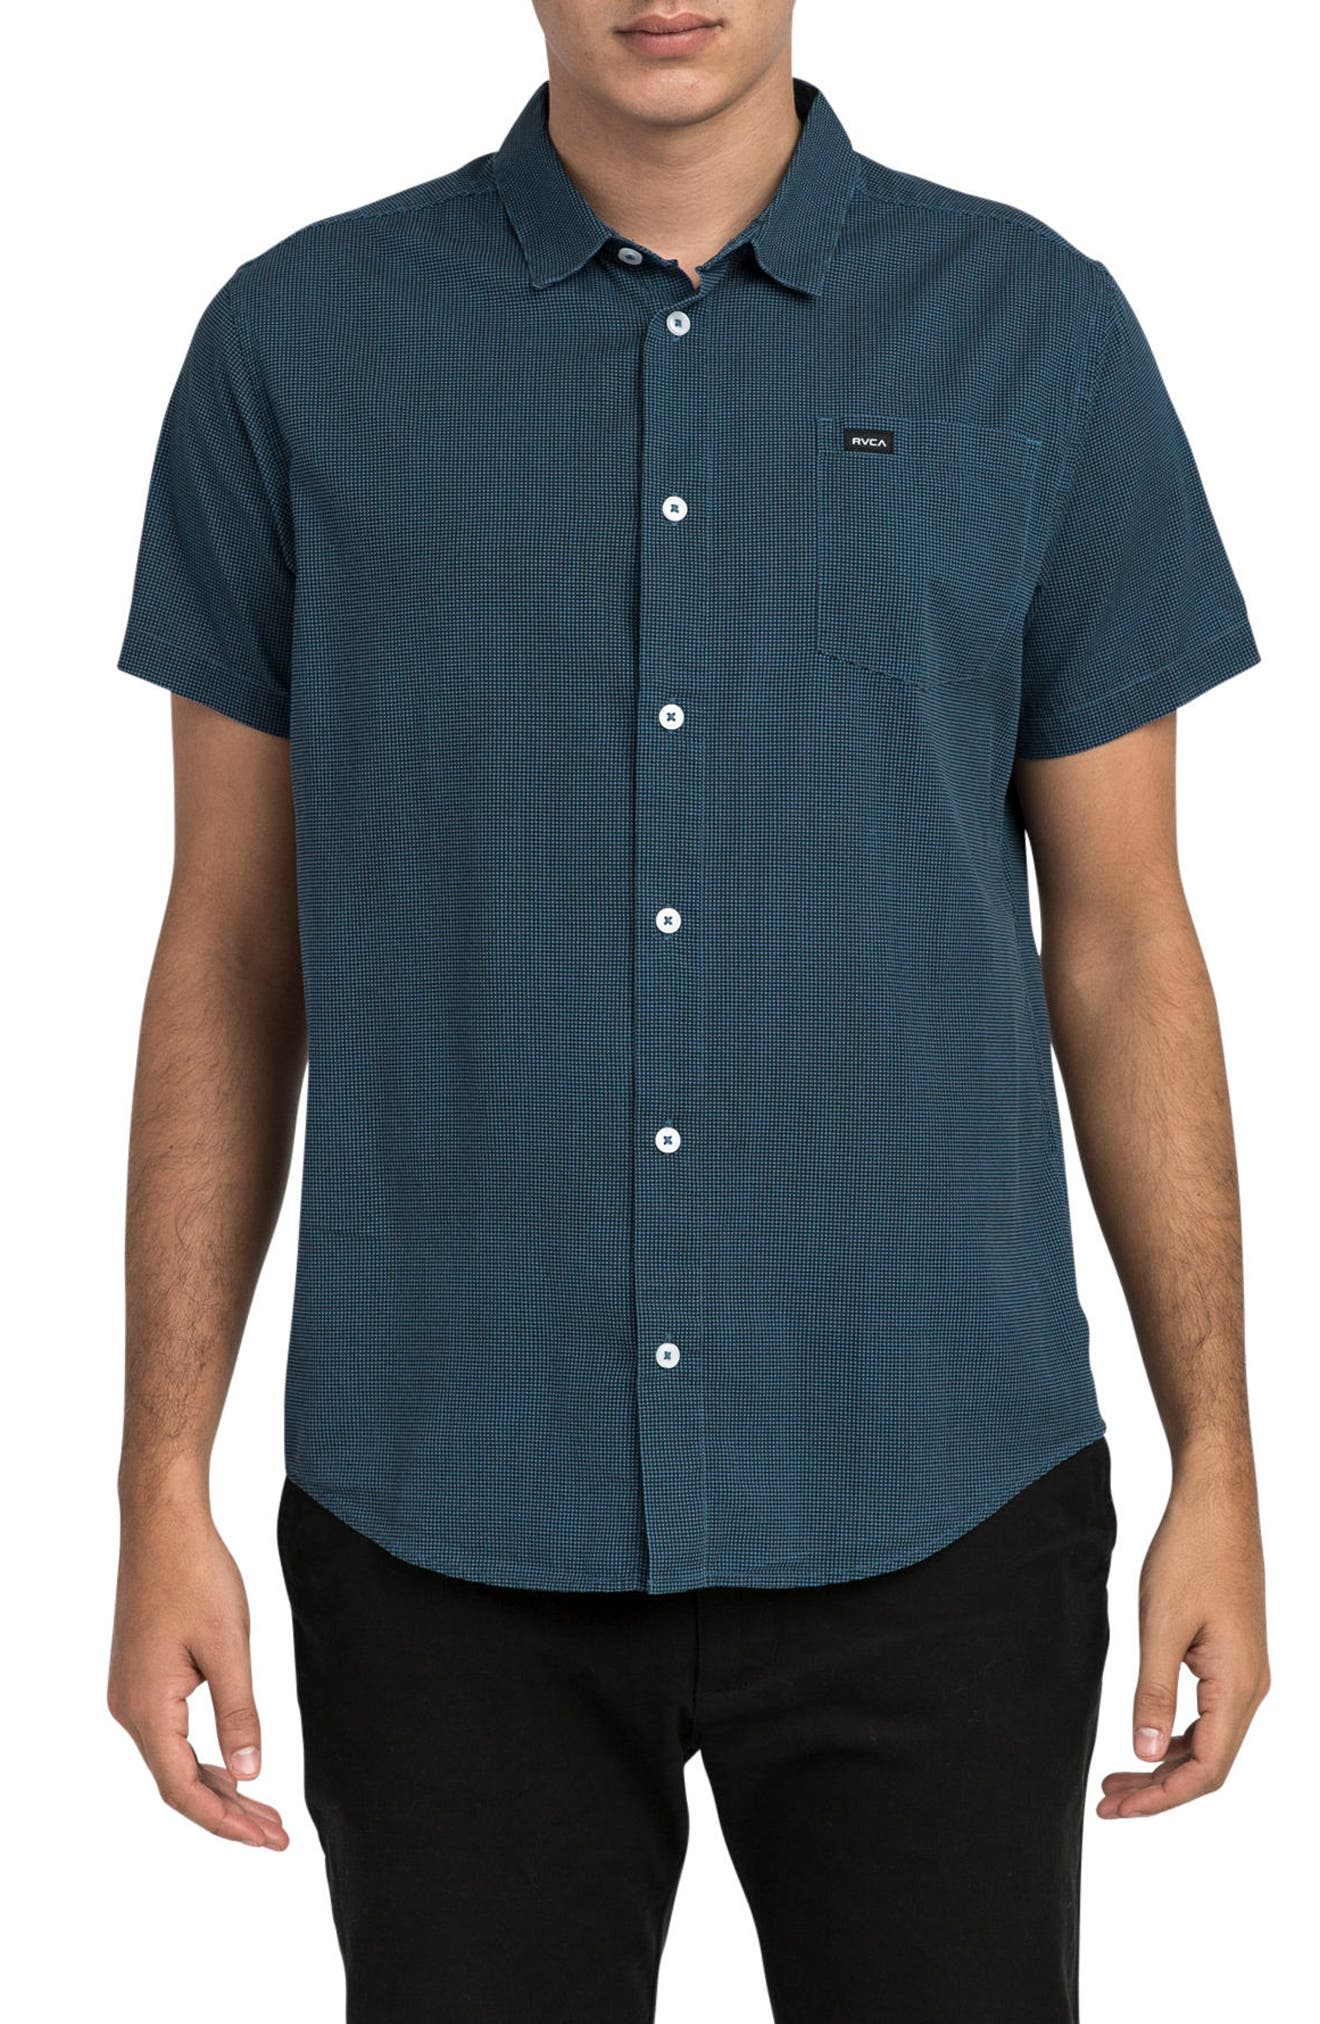 No Name Woven Shirt,                             Main thumbnail 1, color,                             400